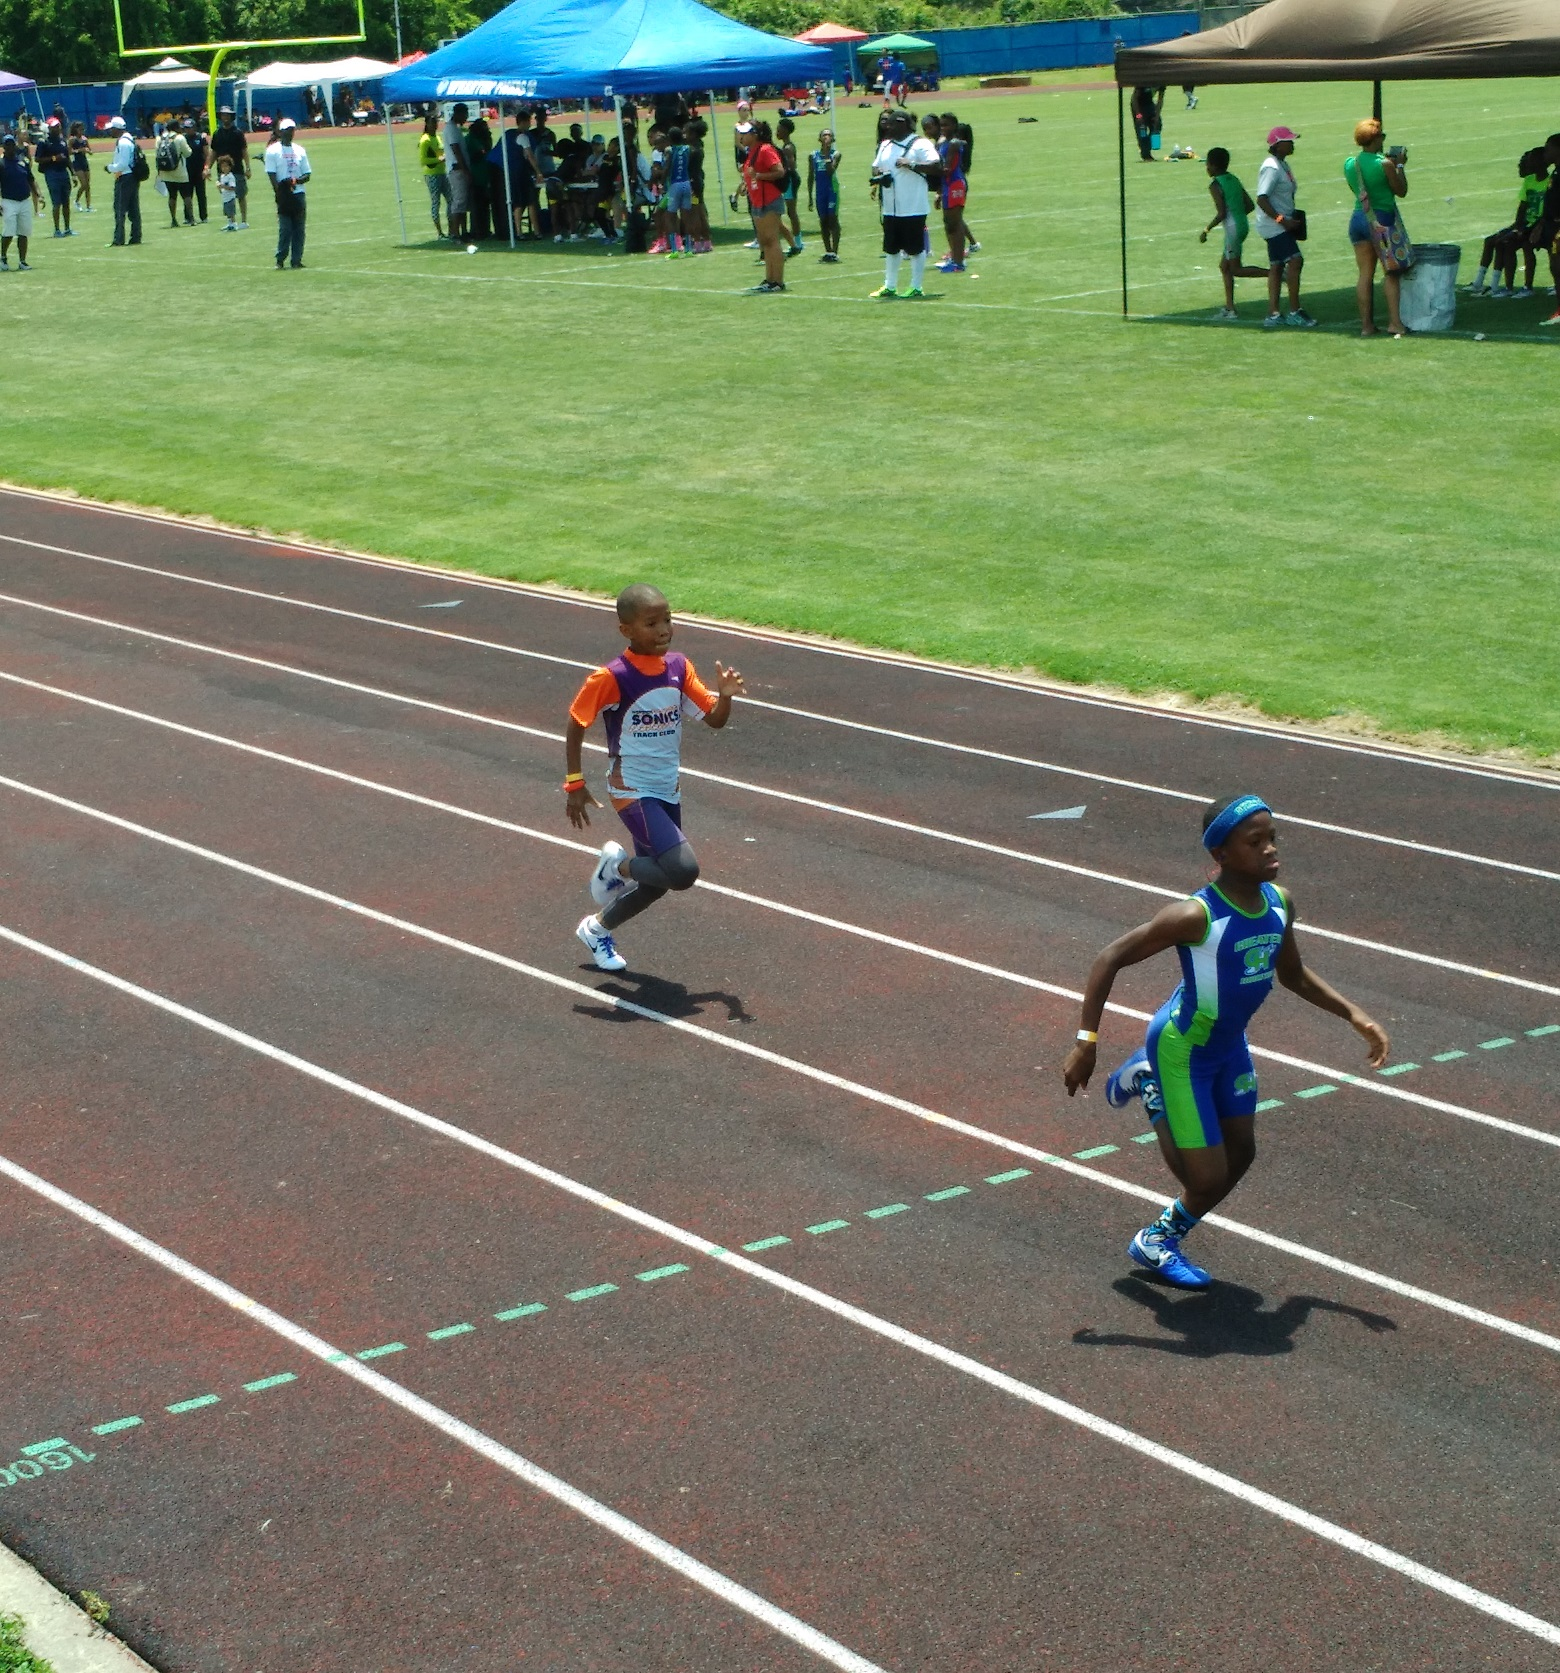 Arik running the 200